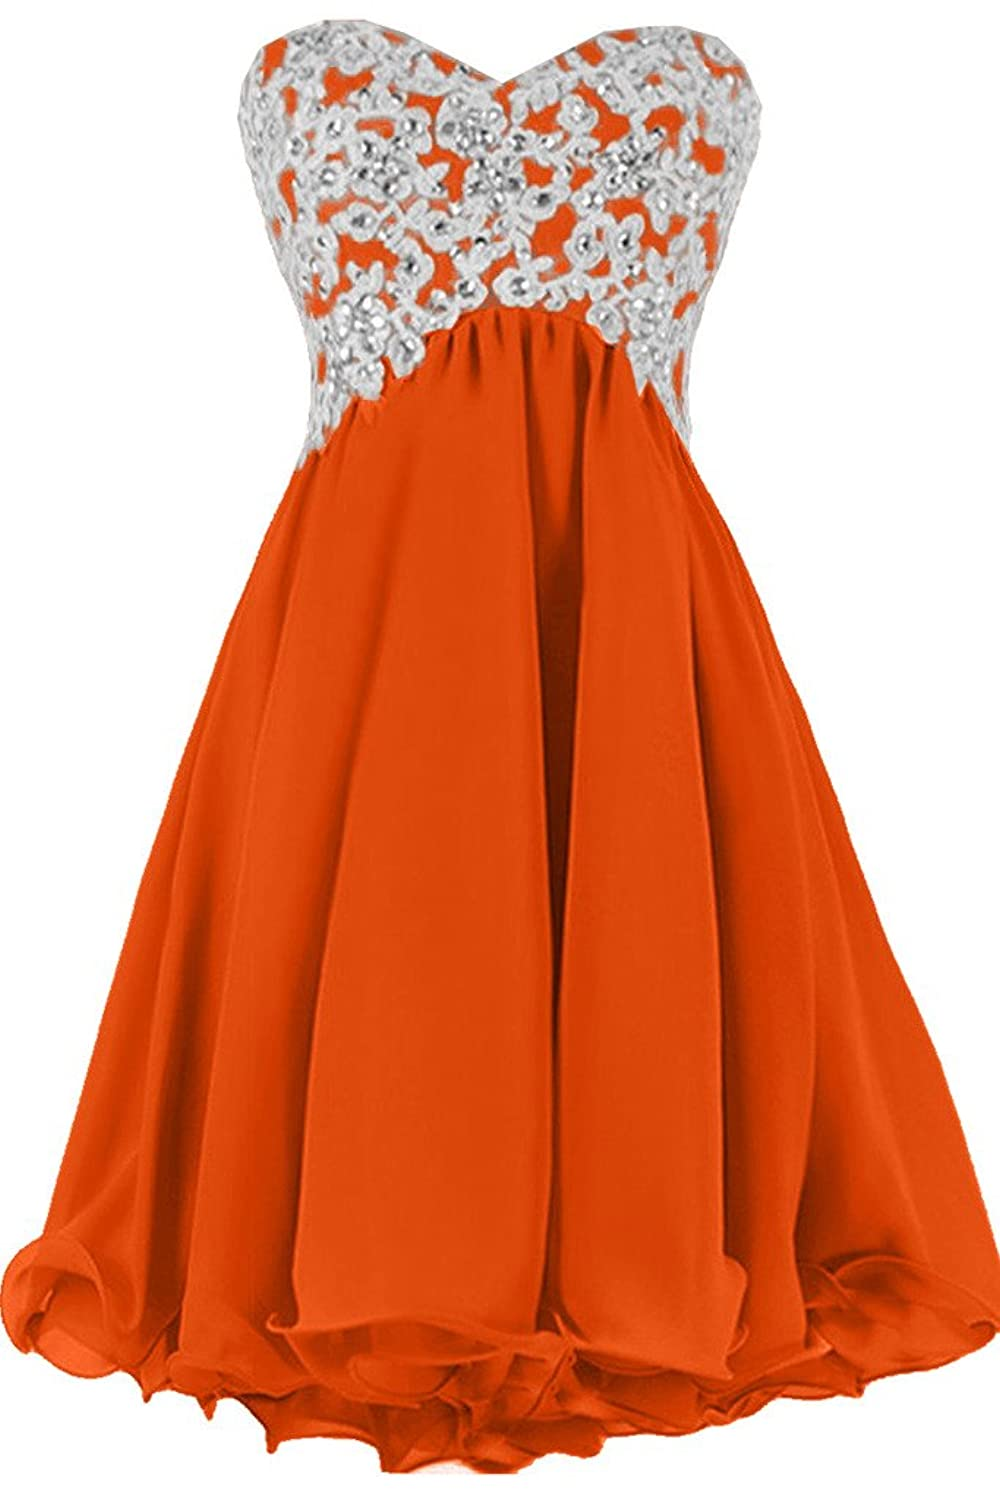 Sunvary A-Line Sweetheart Lace Appliques Chiffon Party Dresses Homecoming Gowns